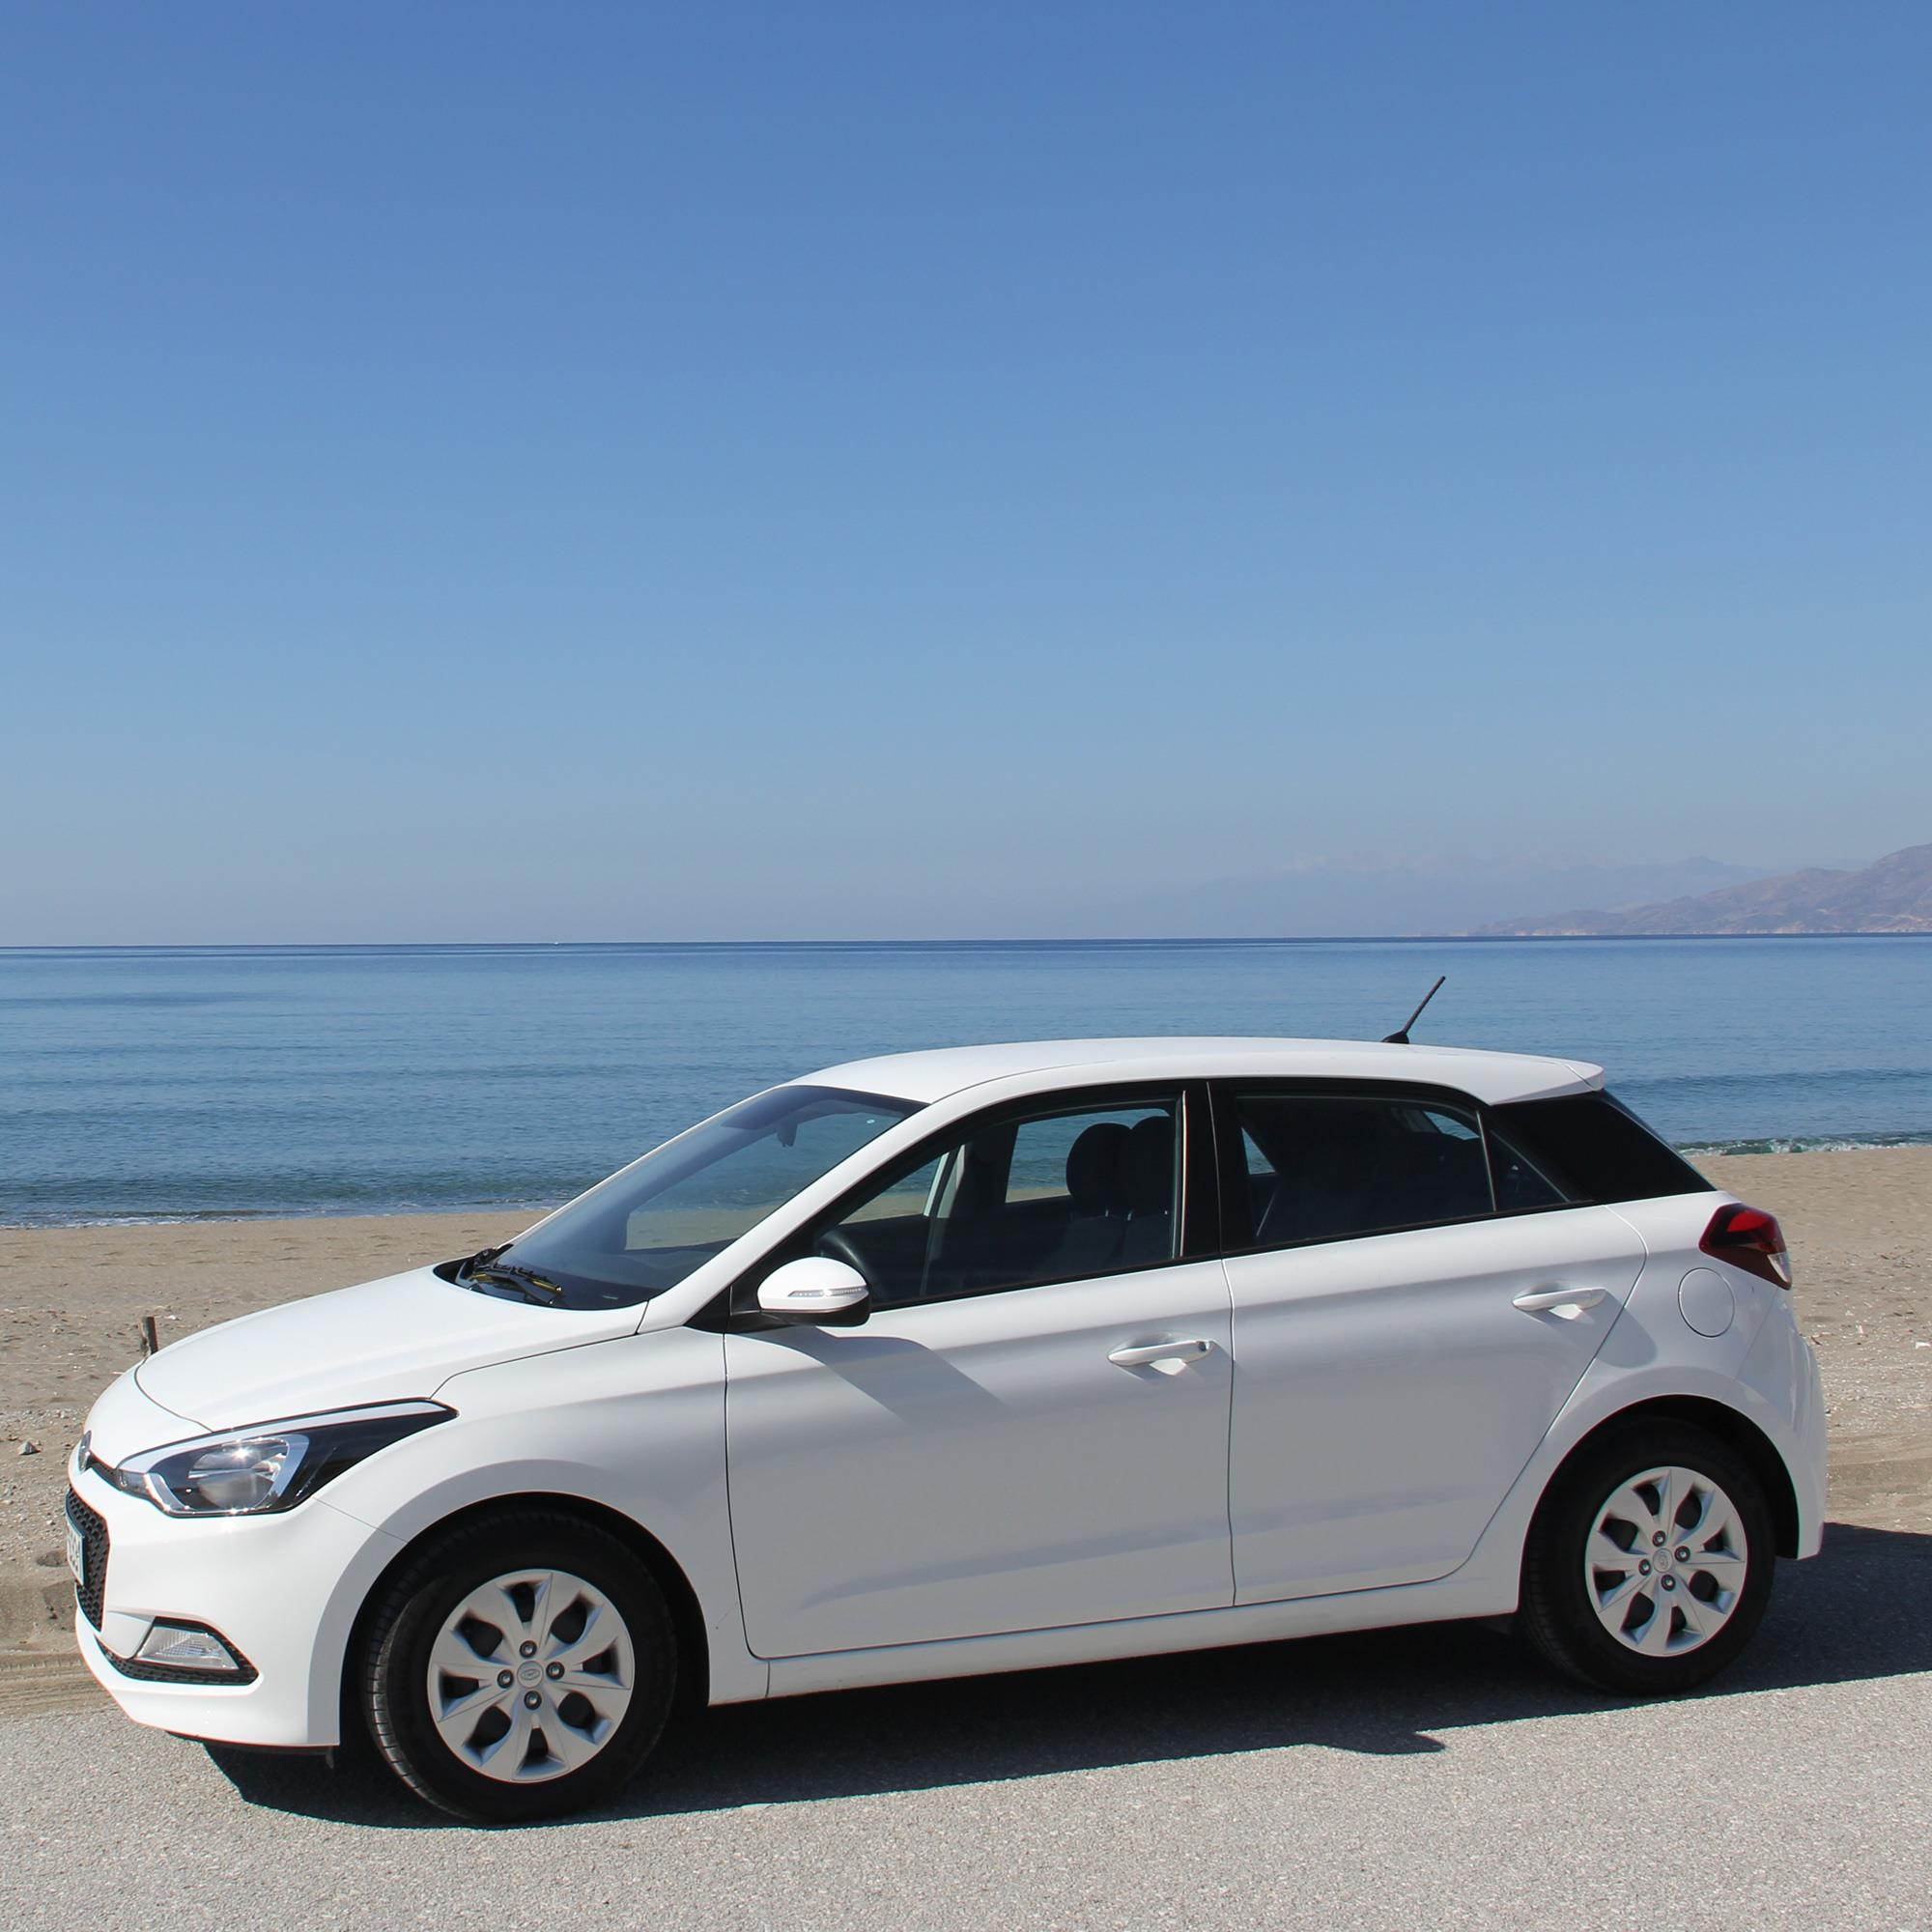 Category B5 - Hyundai I-20